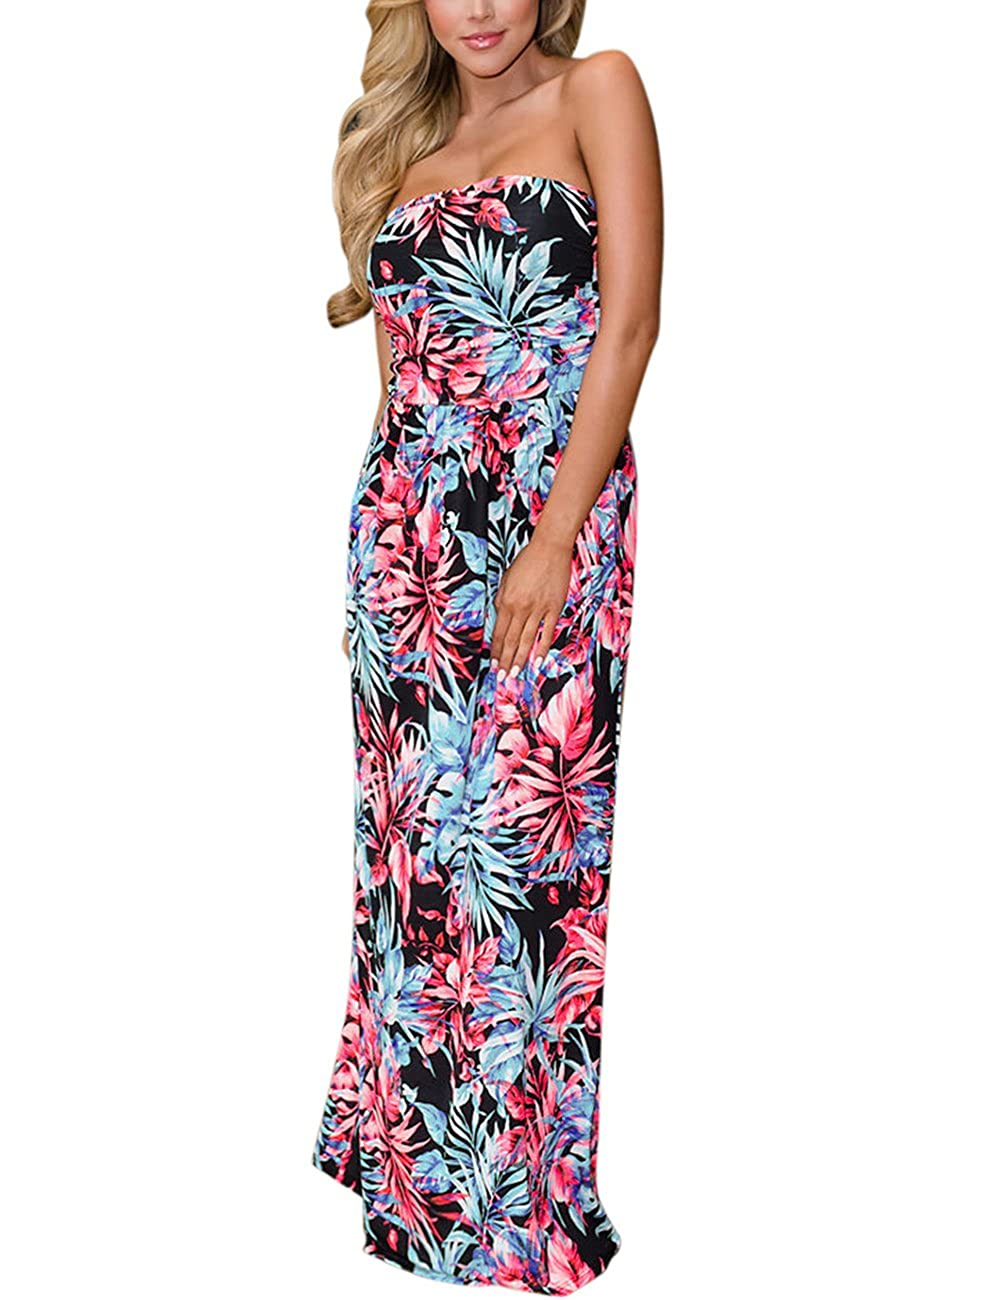 fd8591ed254 Top2  GloryStar Women s Summer Boho Strapless Midi Dresses High Waist  Vintage Floral Print Maxi Long Dress with Pockets